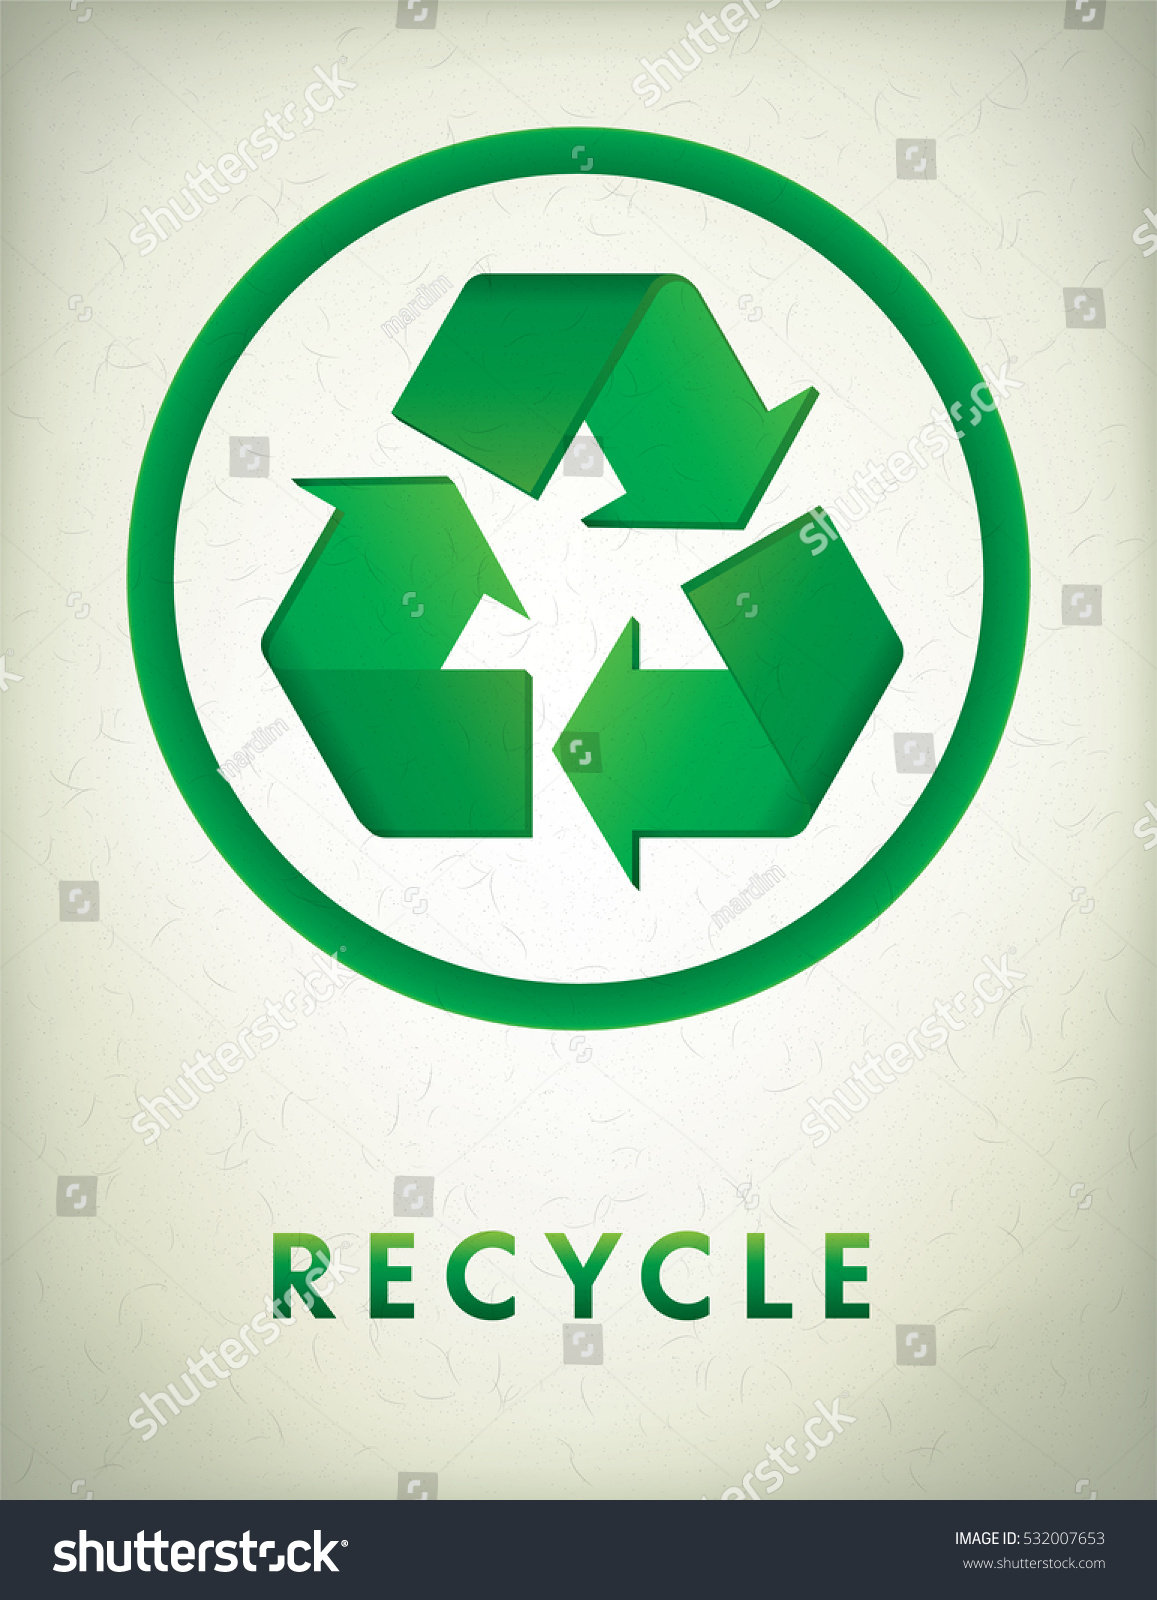 Recycle symbol on recycled paper stock vector 532007653 shutterstock recycle symbol on recycled paper buycottarizona